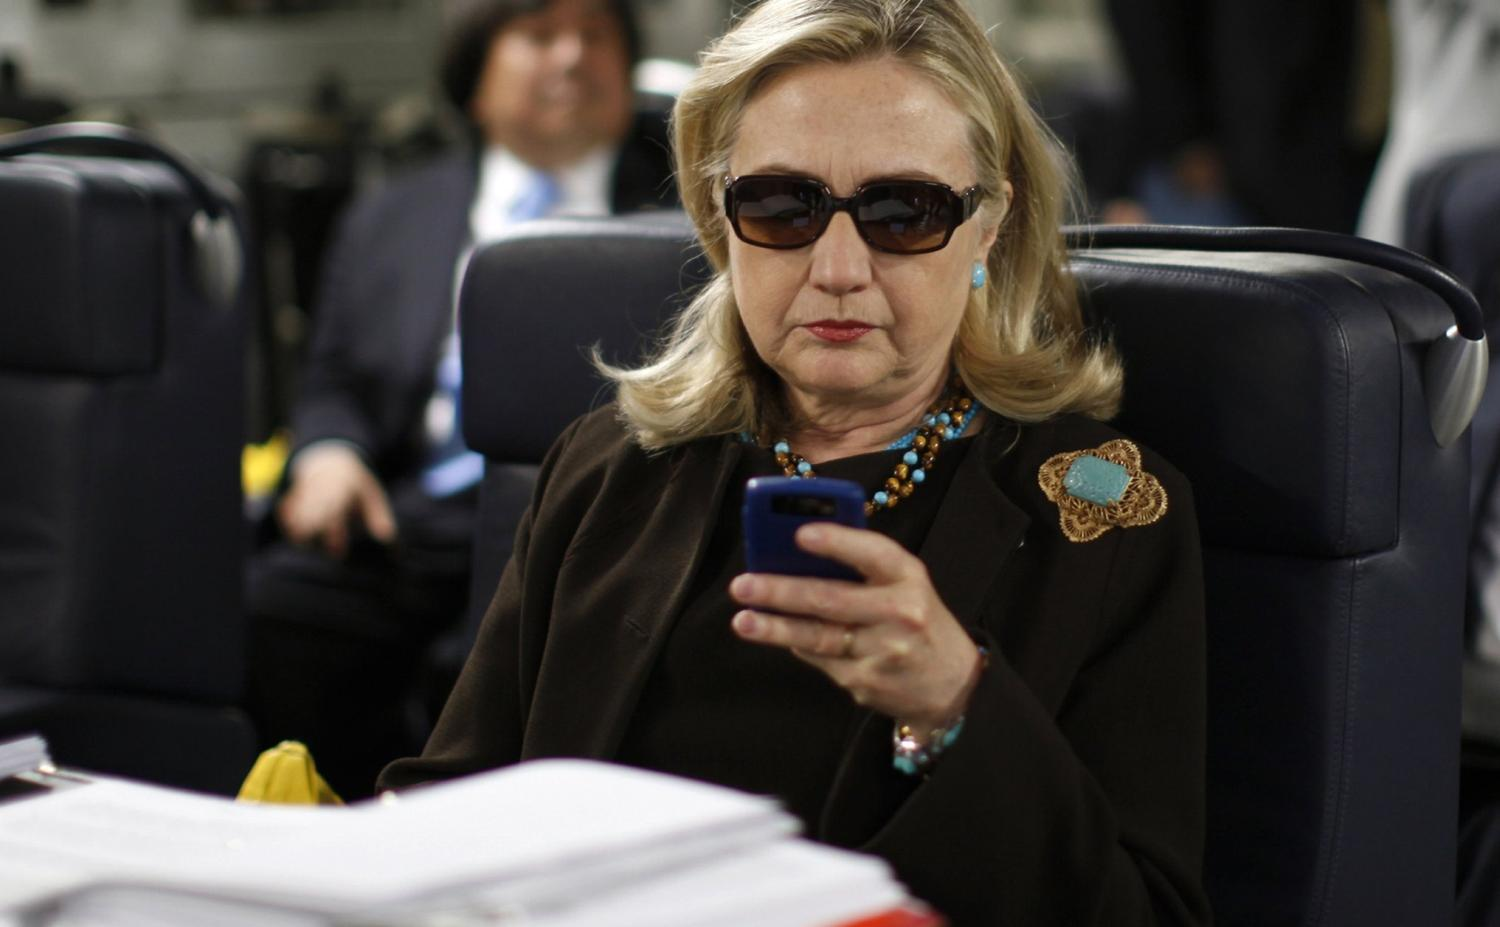 State Department gears up for final Hillary Clinton email release